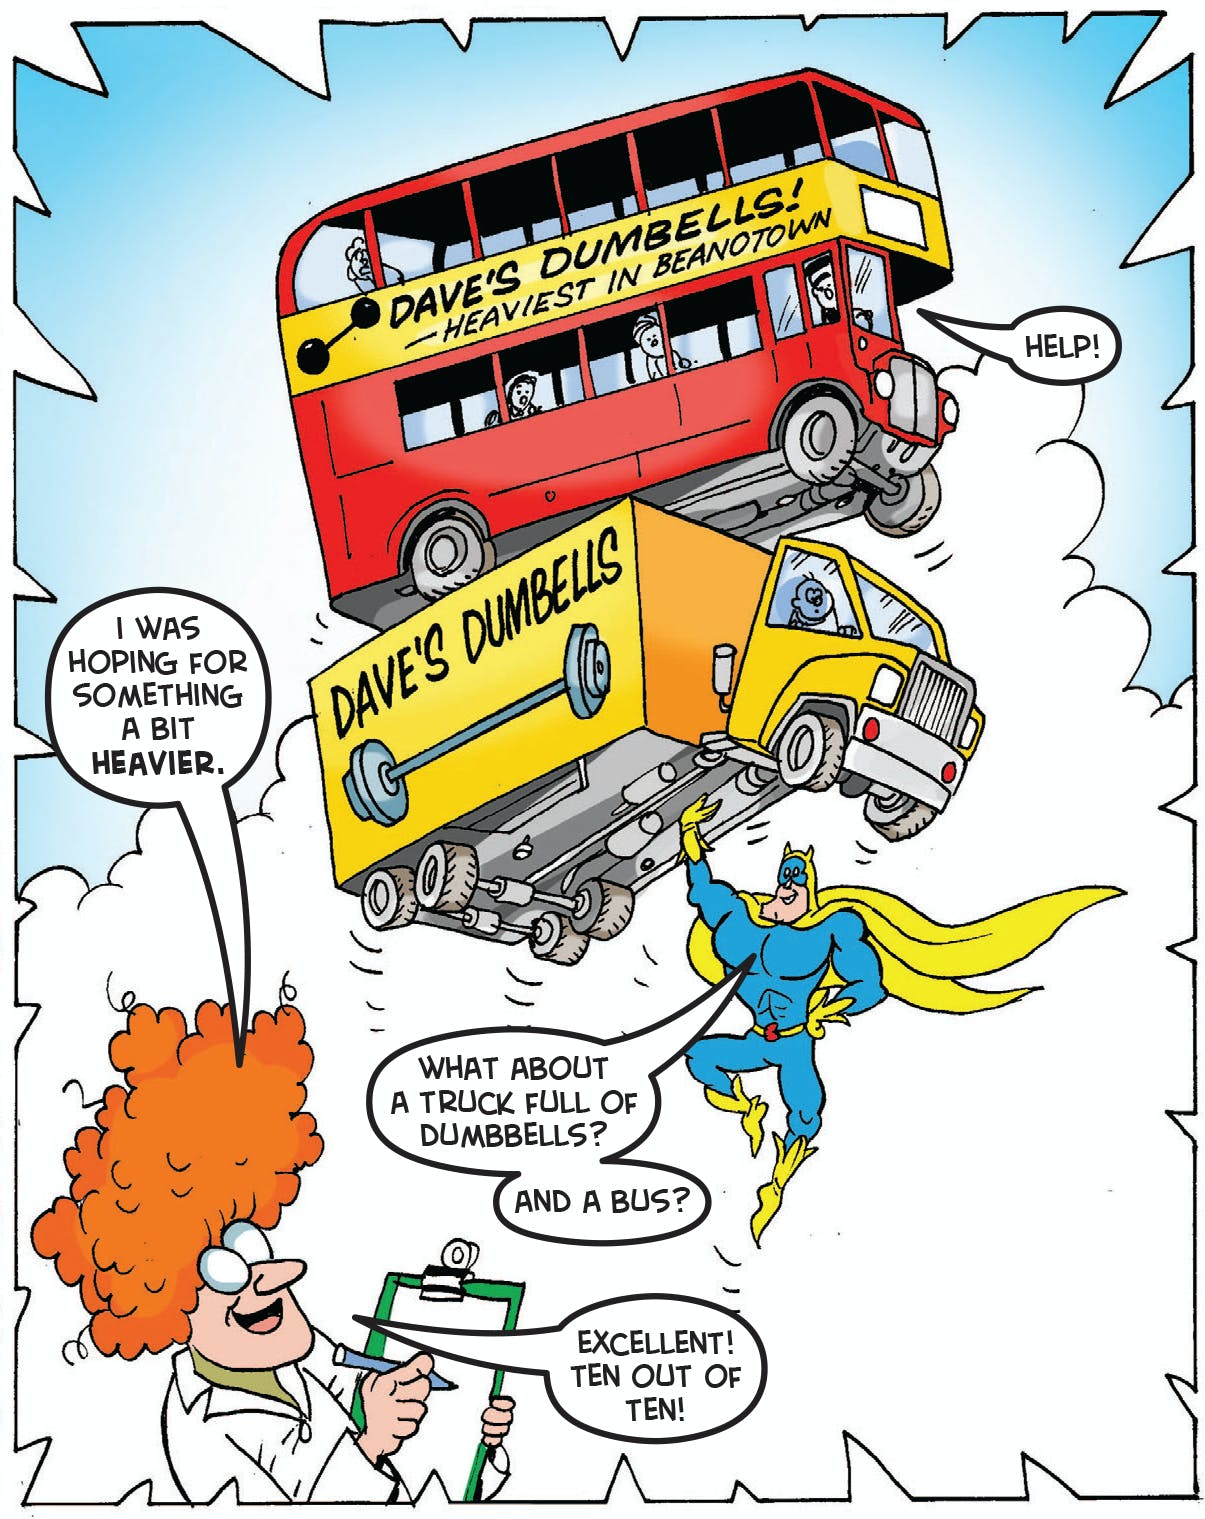 Bananaman lifts a truck and a bus